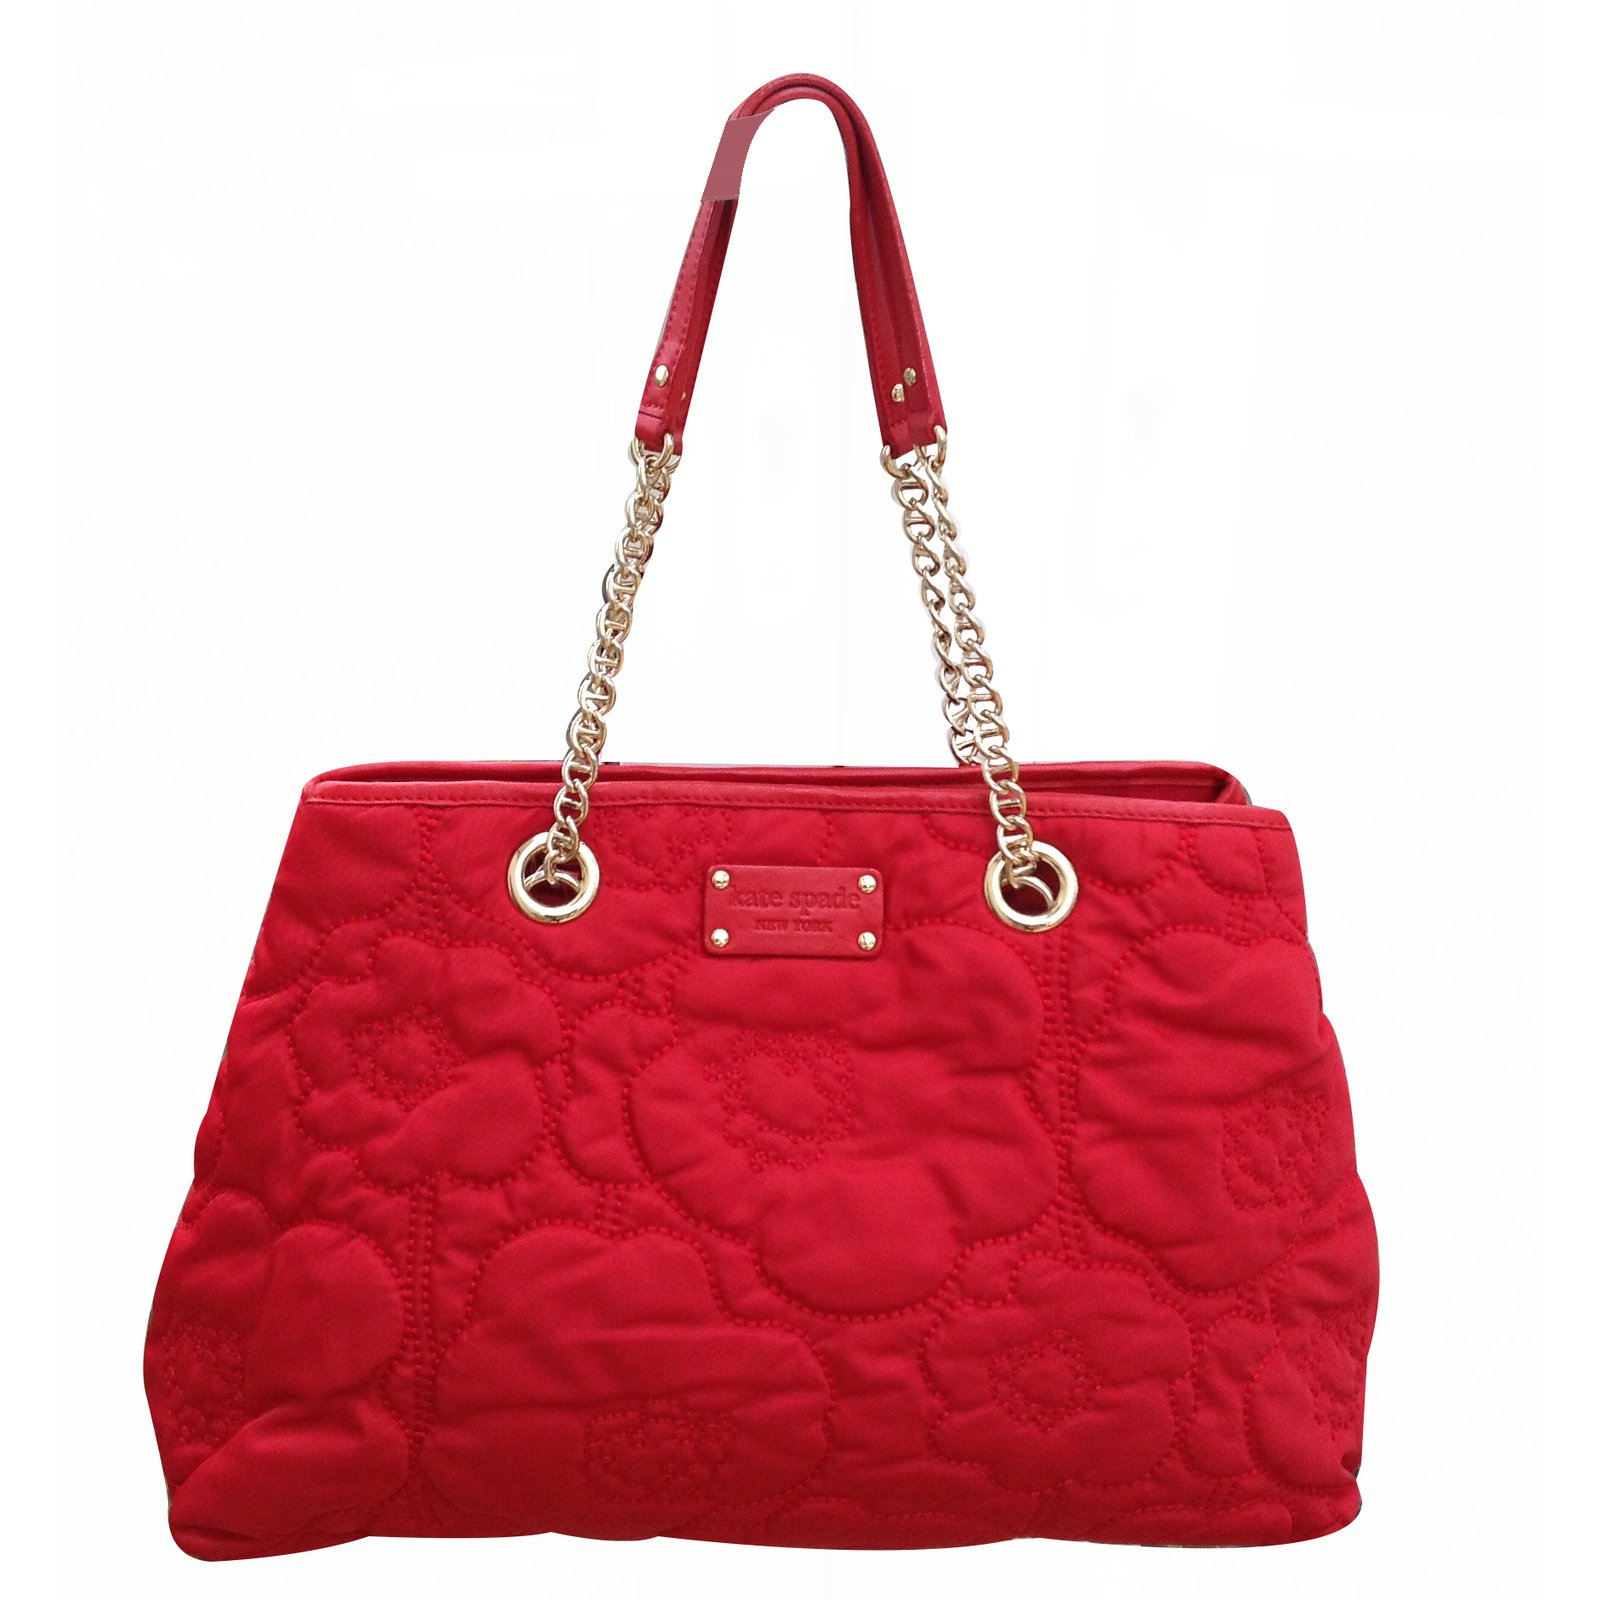 Kate Spade Cherry Floral Quilted Large Handbags Cloth Red ref ... : kate spade red quilted bag - Adamdwight.com